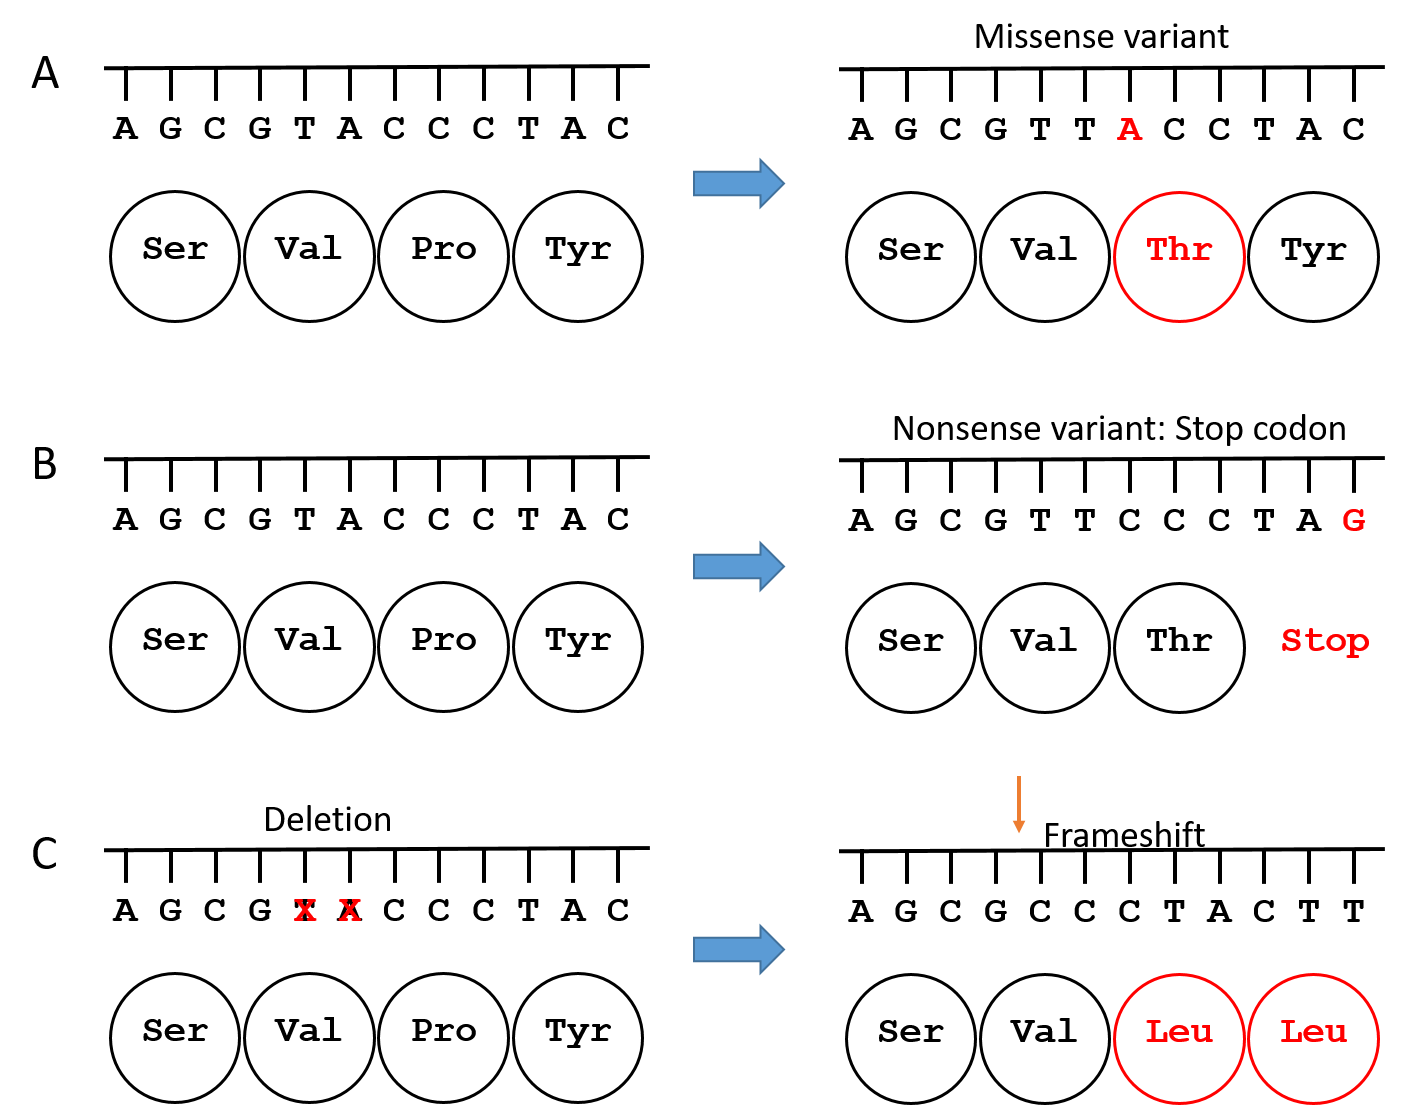 Figure 3. Types of variants.  A. A missense variant results in an amino acid change. B. A nonsense variant results in a stop codon and termination of the growing chain of amino acids. C. A deletion or duplication variant of one or several bases (in this case, a deletion of two bases) shifts the reading frame, so the wrong amino acids get added to the protein. What was originally the word GTA coding for Val is shifted to the word GCC, which also codes for Val, but then the next word is CTA coding for Leu rather than CCC coding for Pro. The remaining codons are frame shifted until a stop codon is reached by chance and then the growth of the amino acid chain is terminated. Addition of one or a few bases can have the same result as deletion.